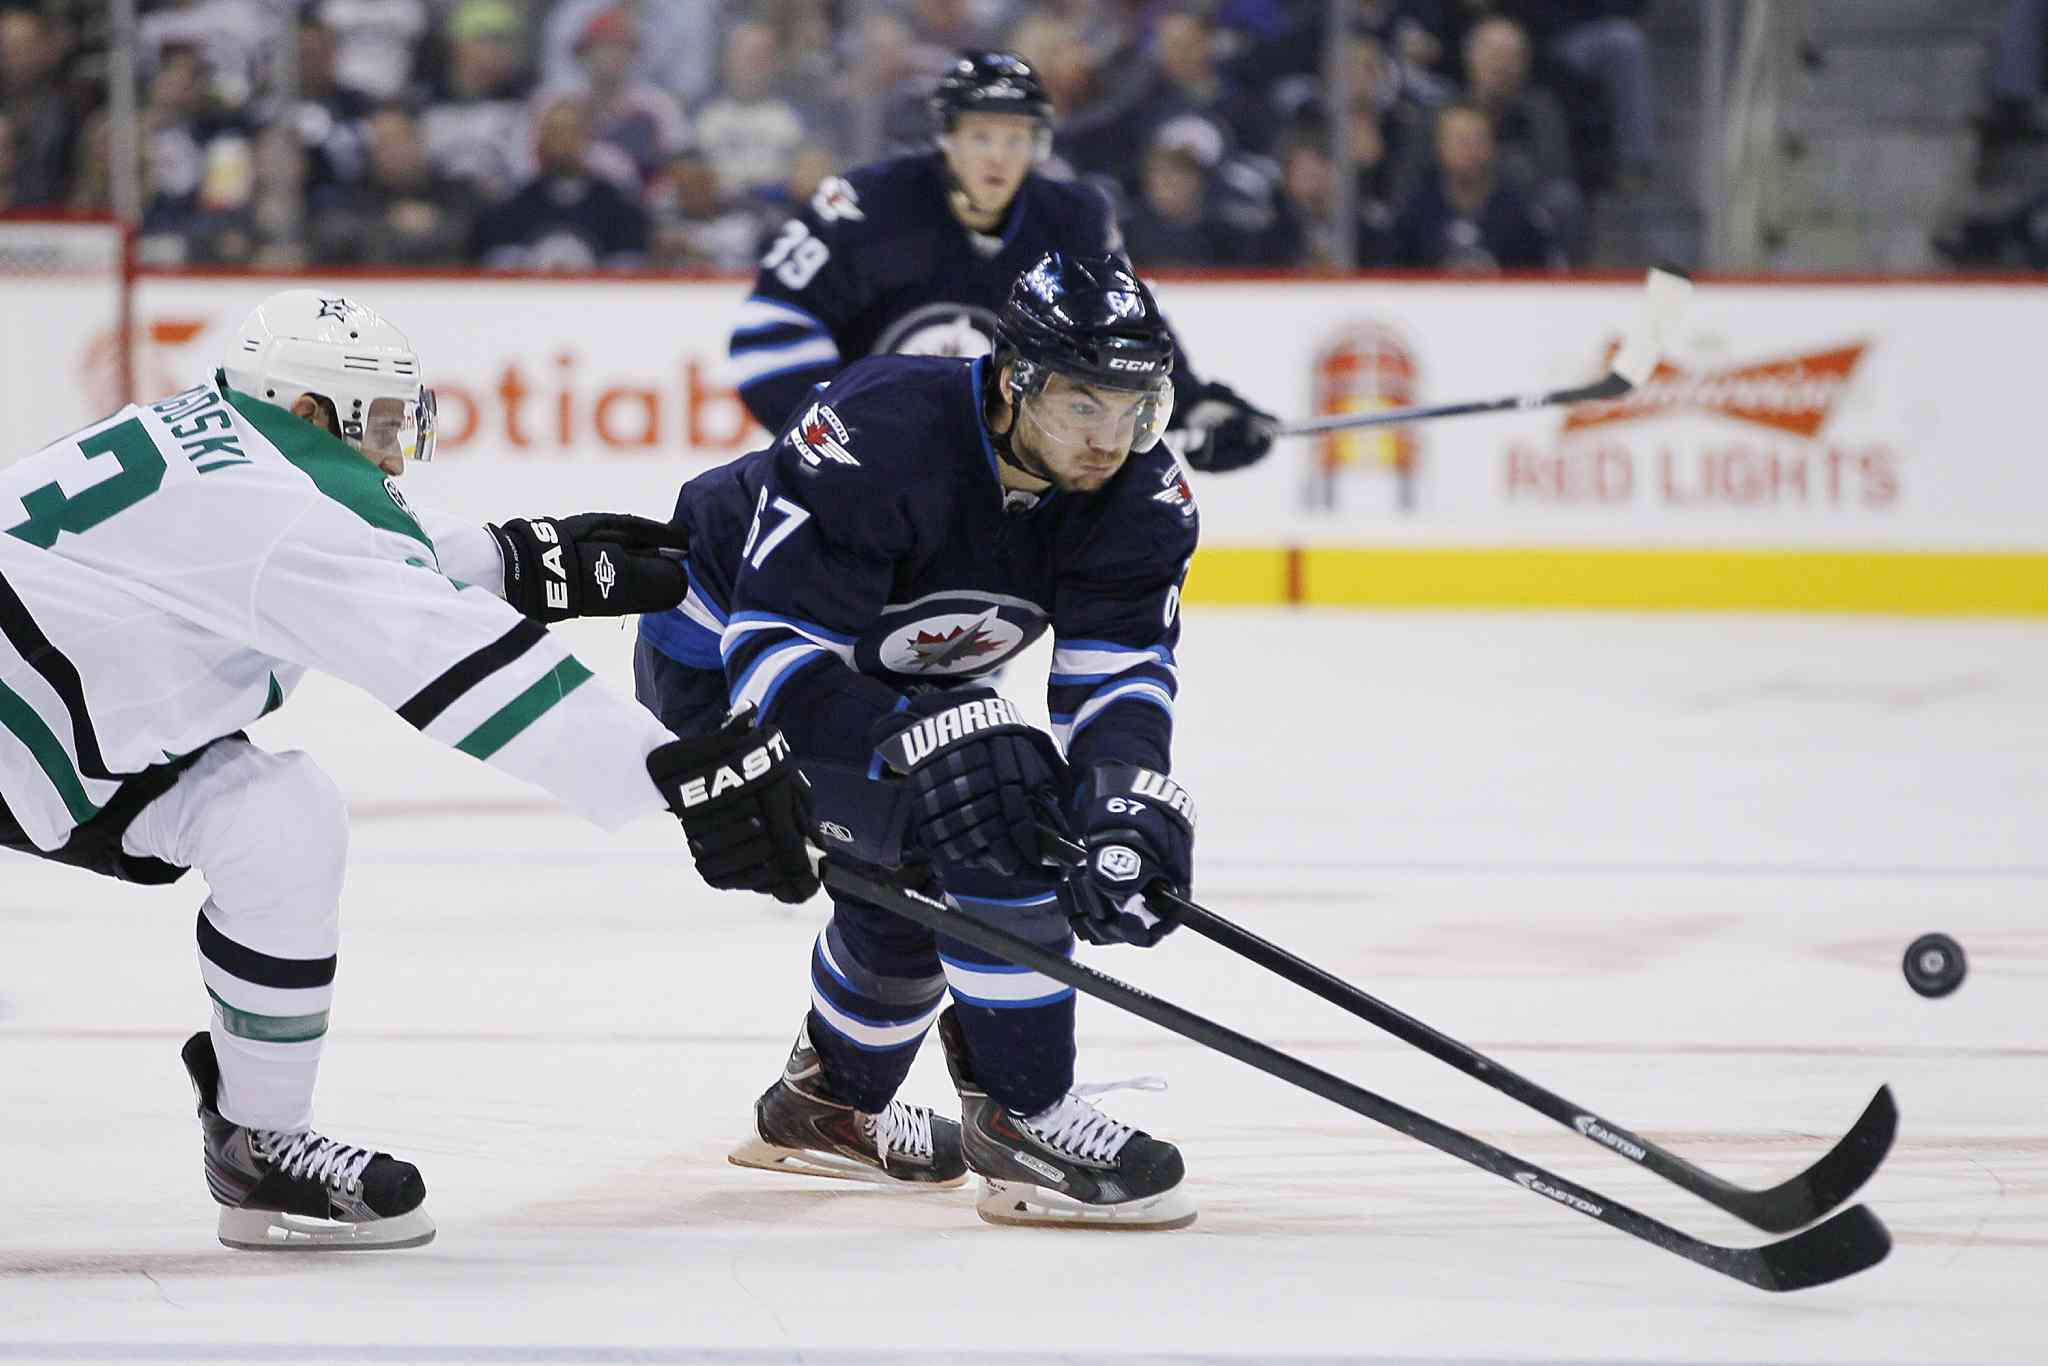 Winnipeg Jets' Michael Frolik (67) and Dallas Stars' Alex Goligoski (33) chase down the puck during the second period.